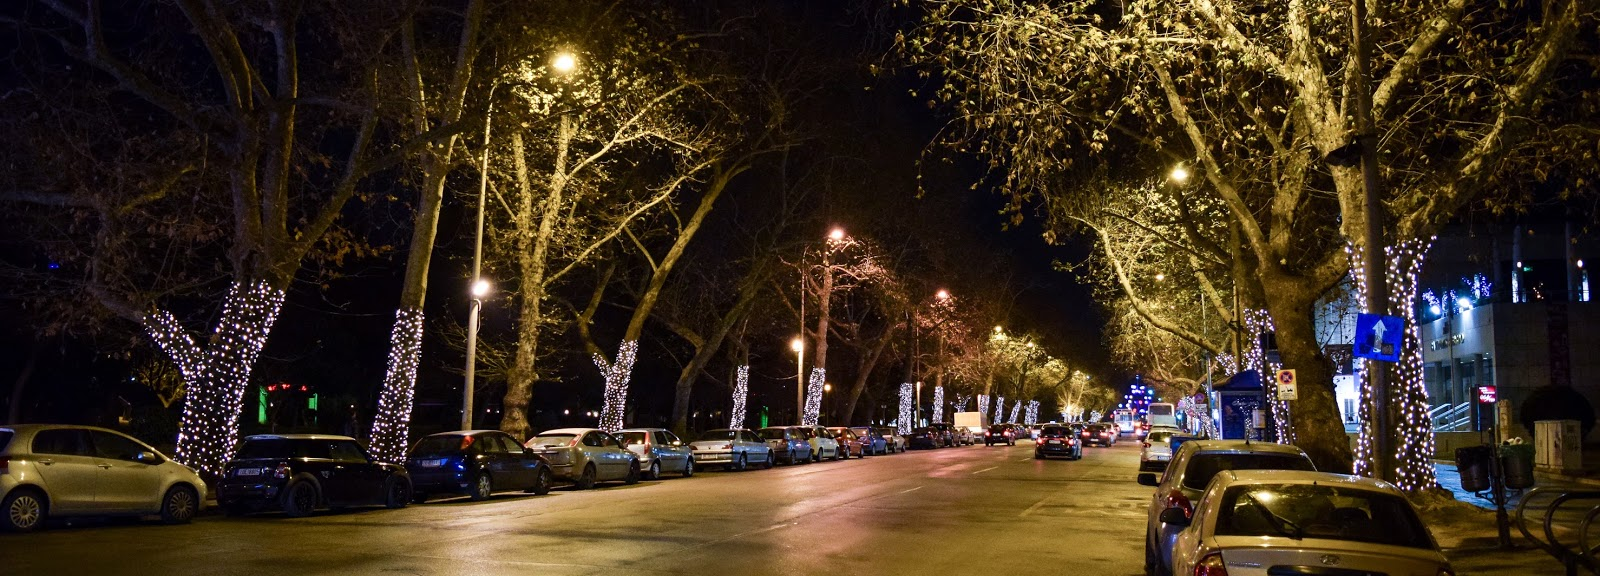 New Year decorations on the trees - Thessaloniki